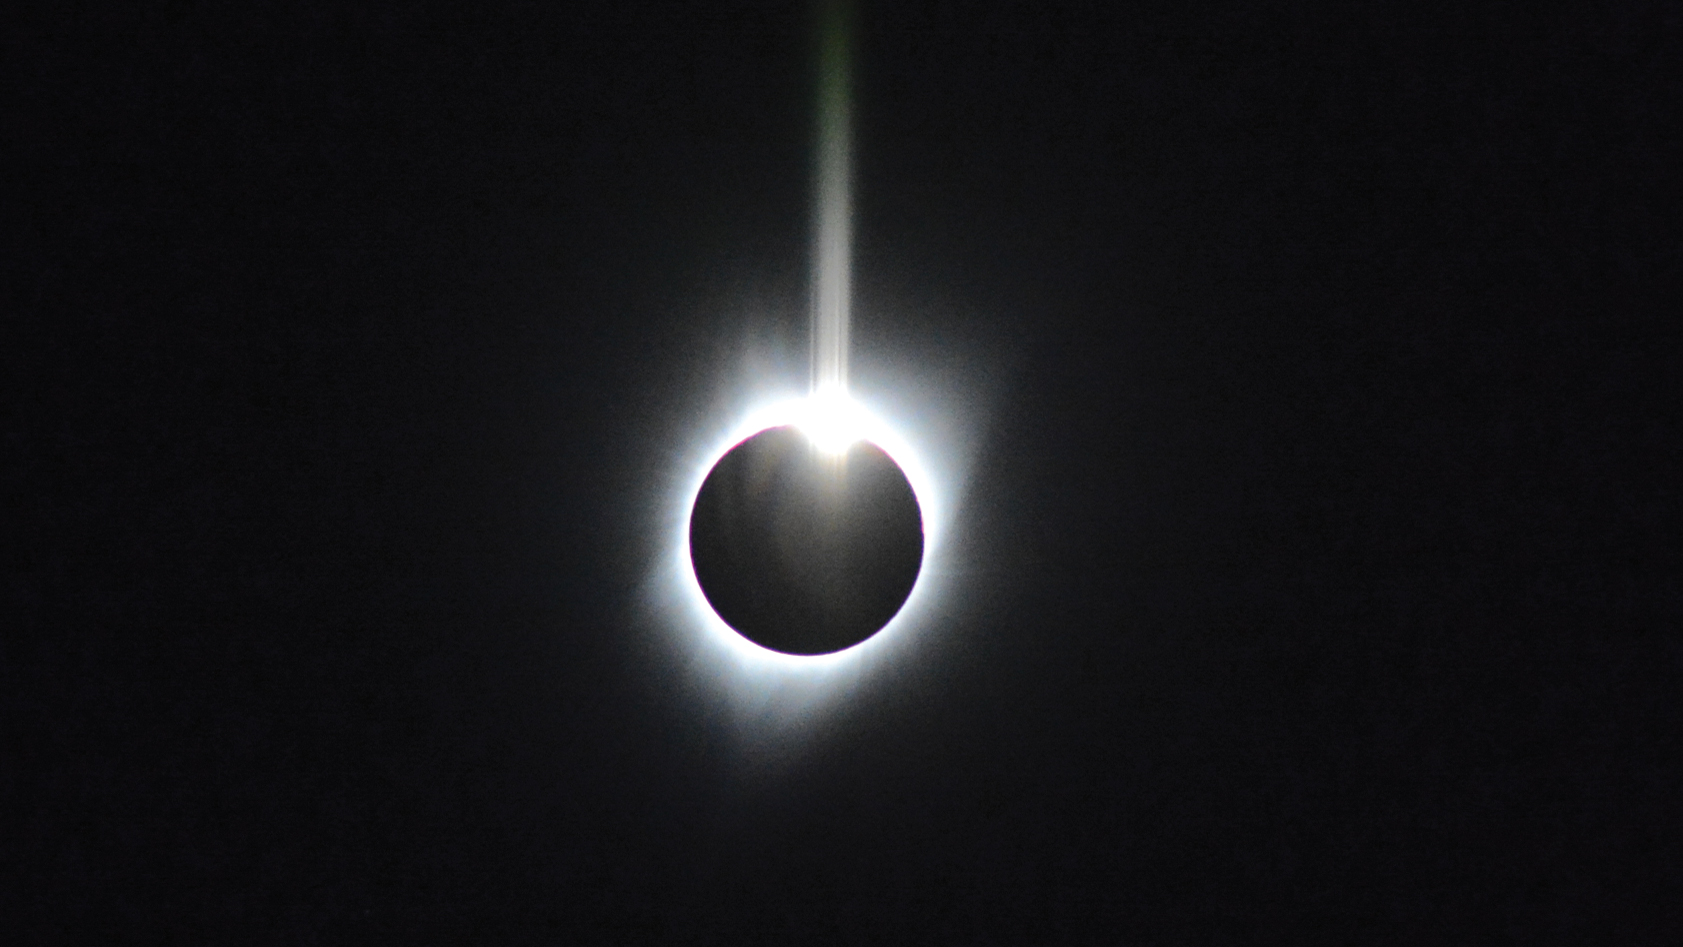 ECLIPSED: Celestial event draws global audience to Keizer